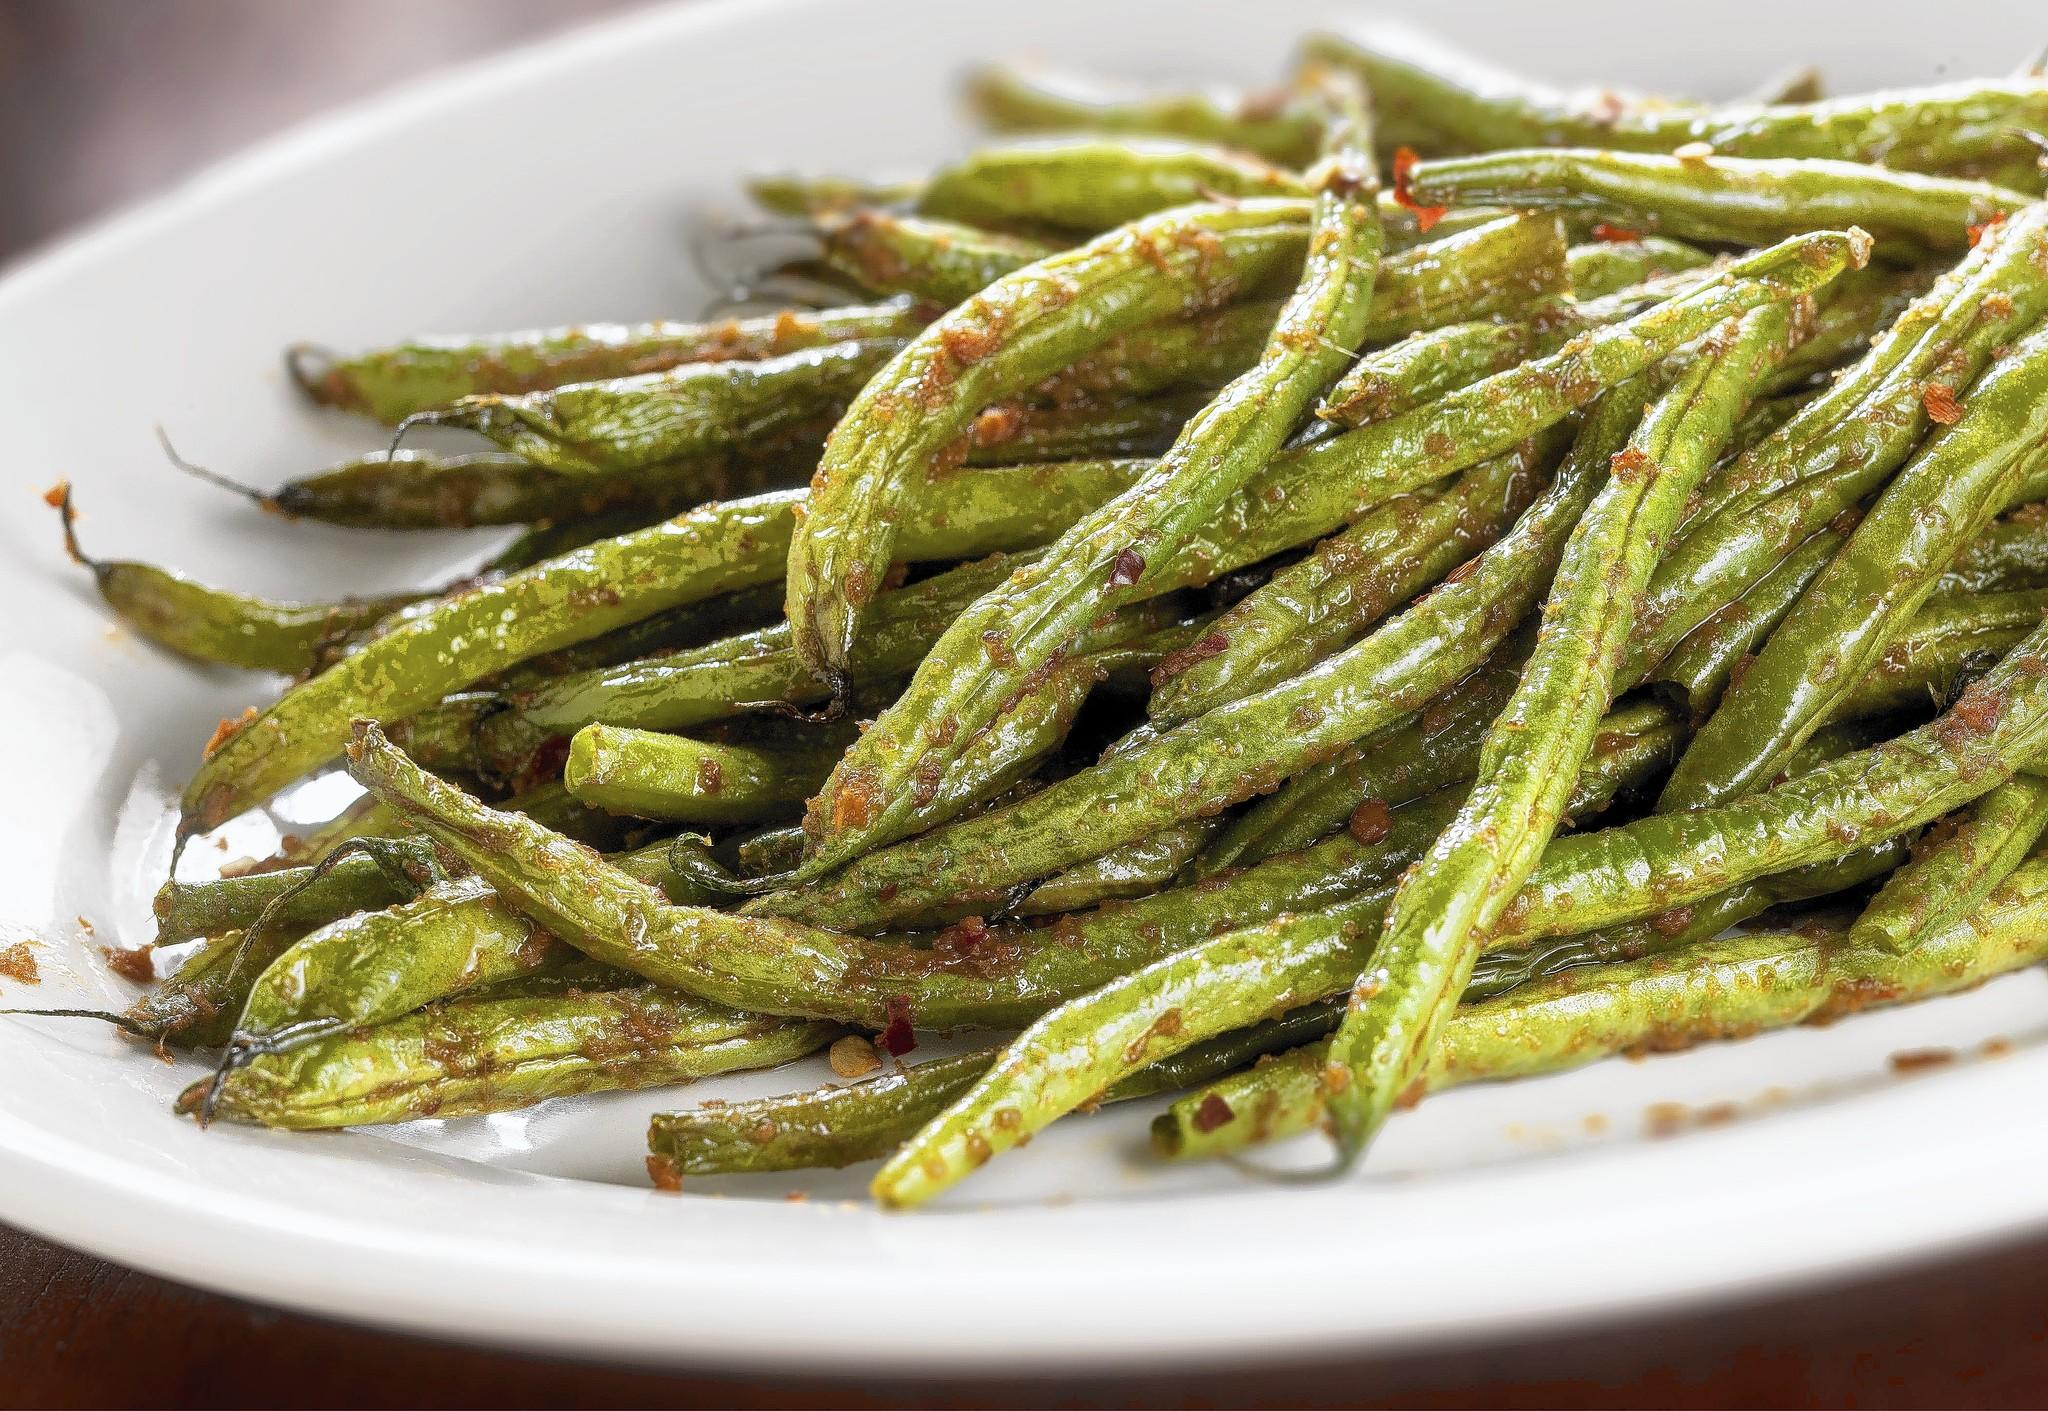 Finished wrinkled green beans recipe.